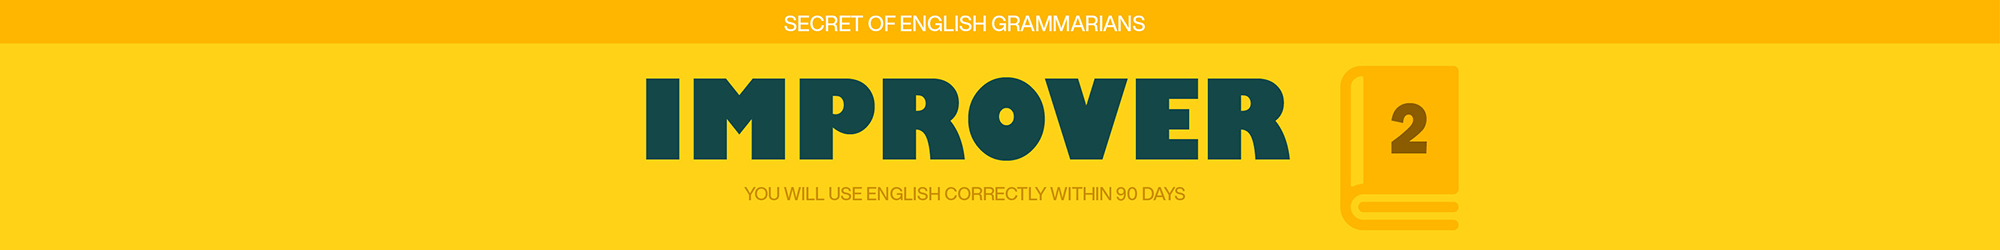 ADVANCED GRAMMAR banner